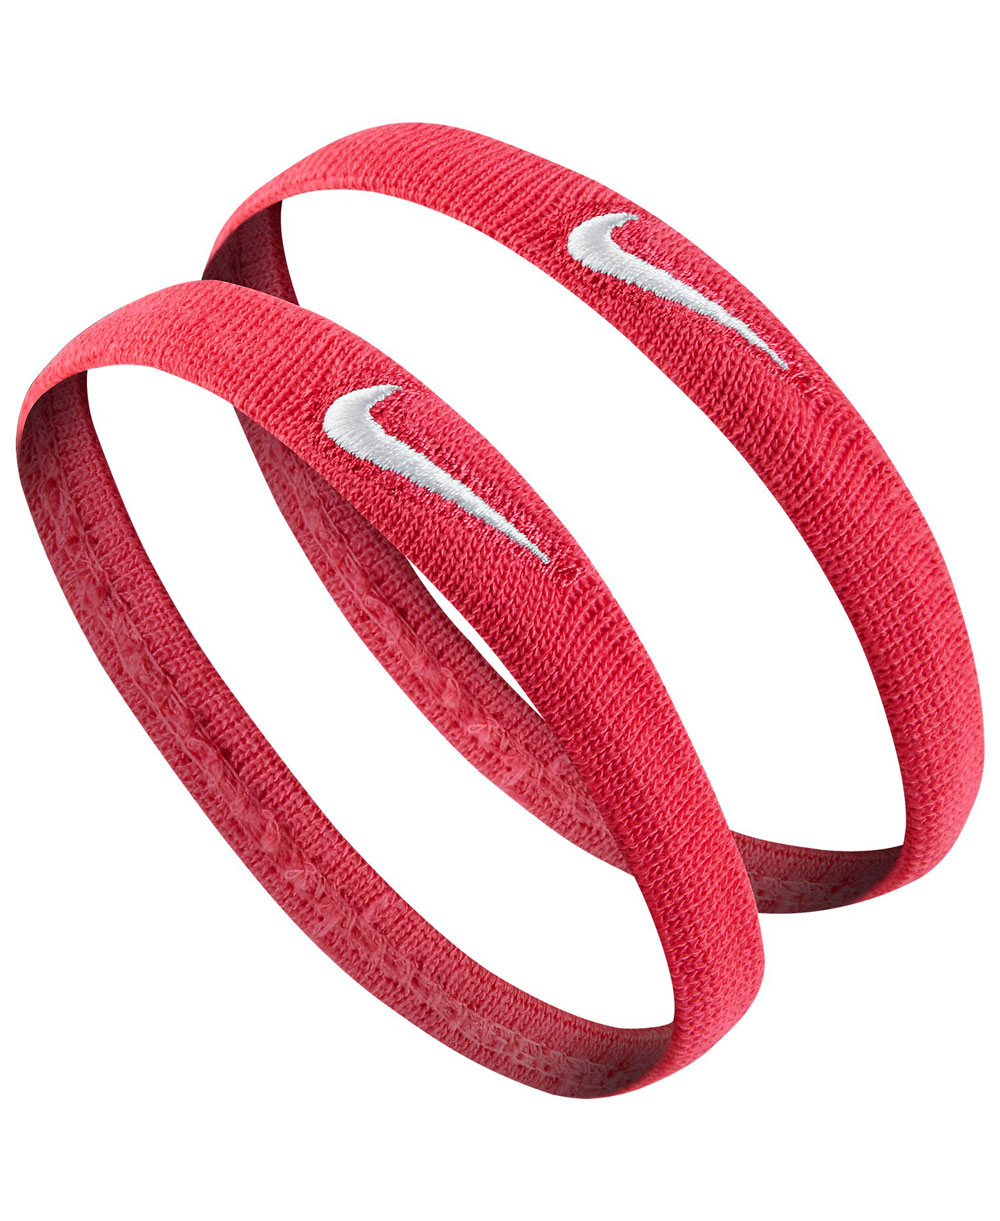 Dri-FIT Skinny Bicep Bands Red